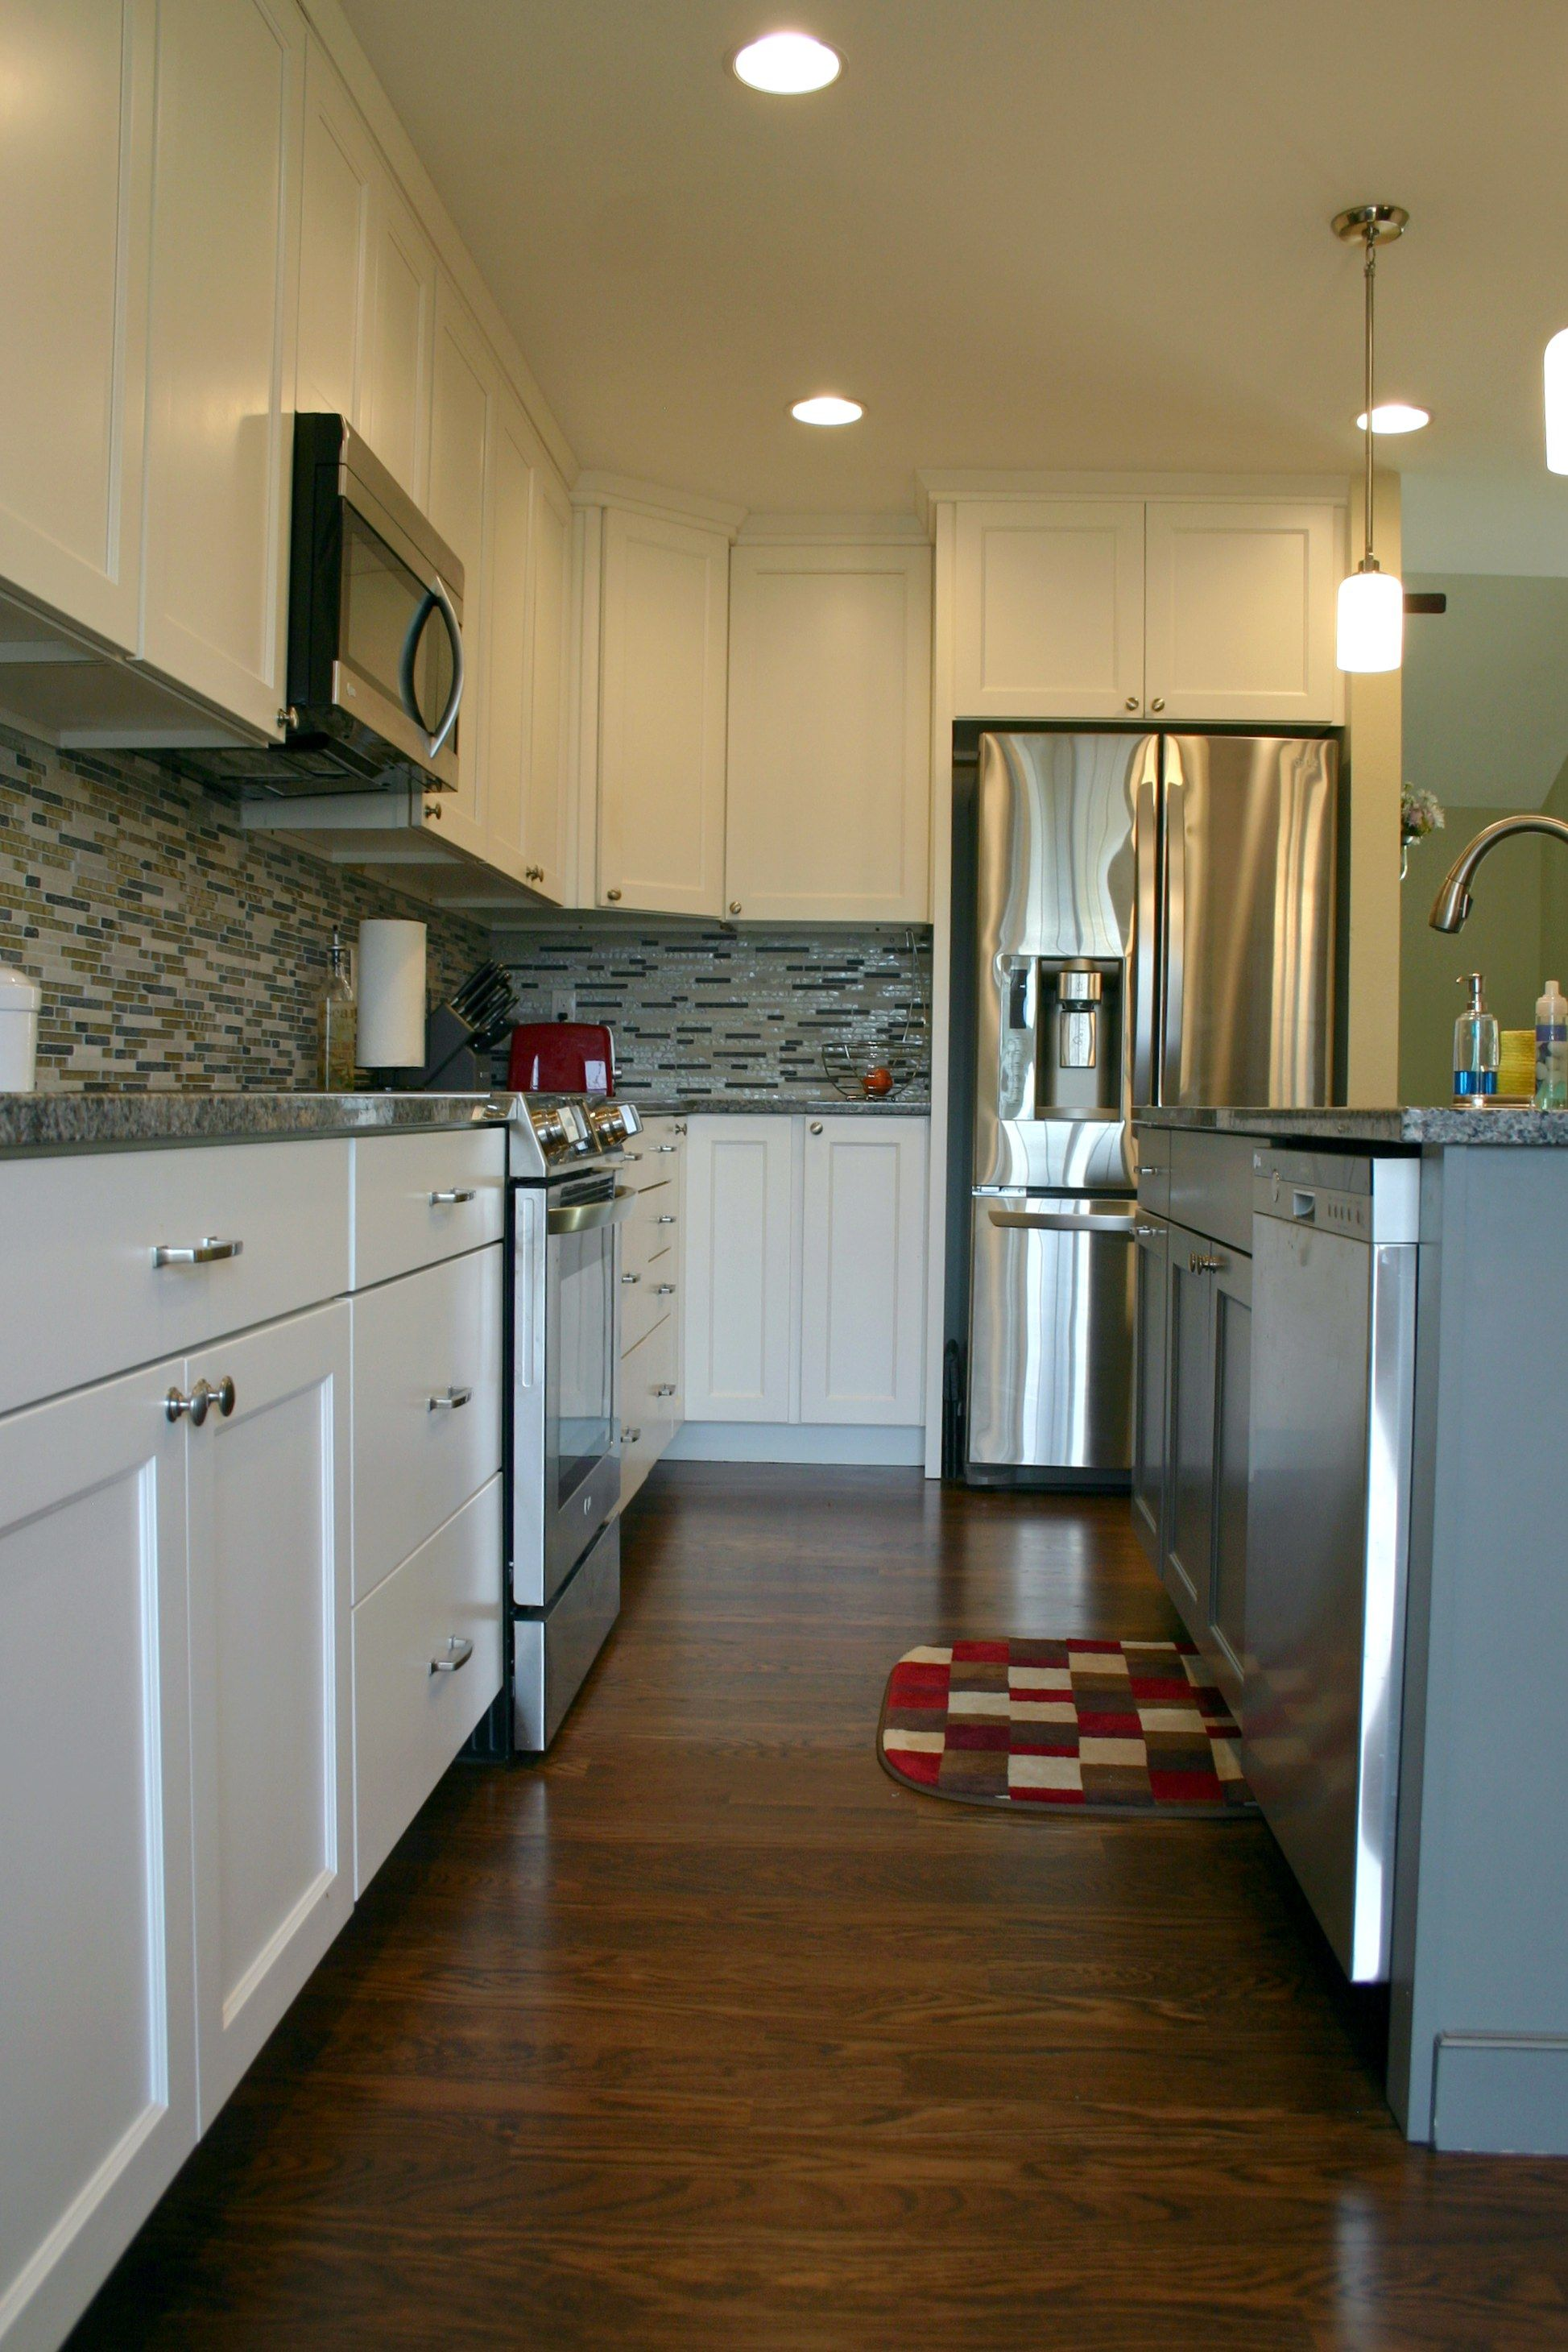 BKC Kitchen and Bath kitchen remodel - Mid Continent Cabinetry ...